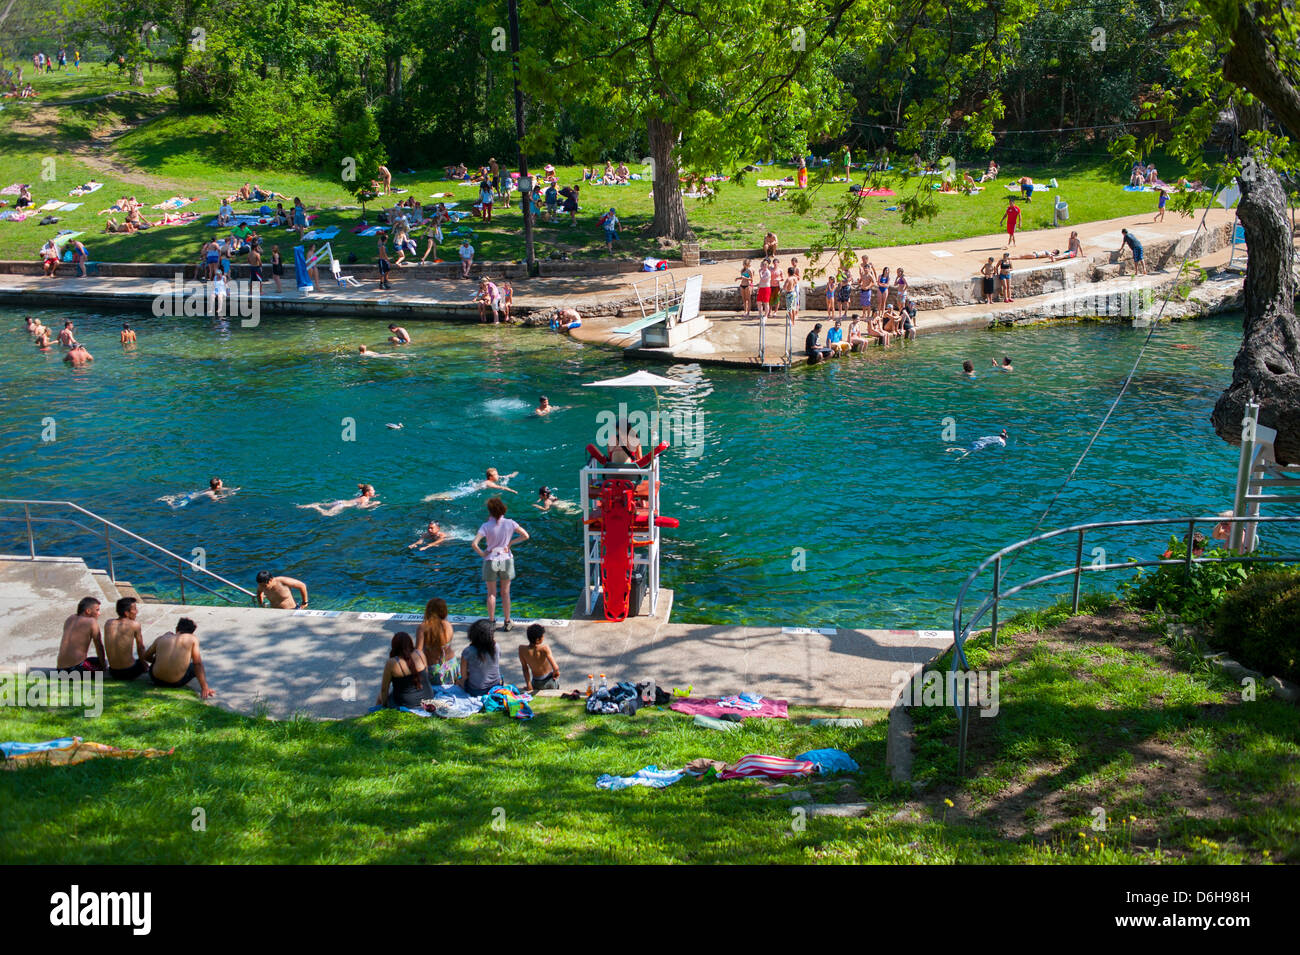 usa-texas-tx-austin-barton-springs-pool-in-zilker-park-natural-spring-D6H98H.jpg